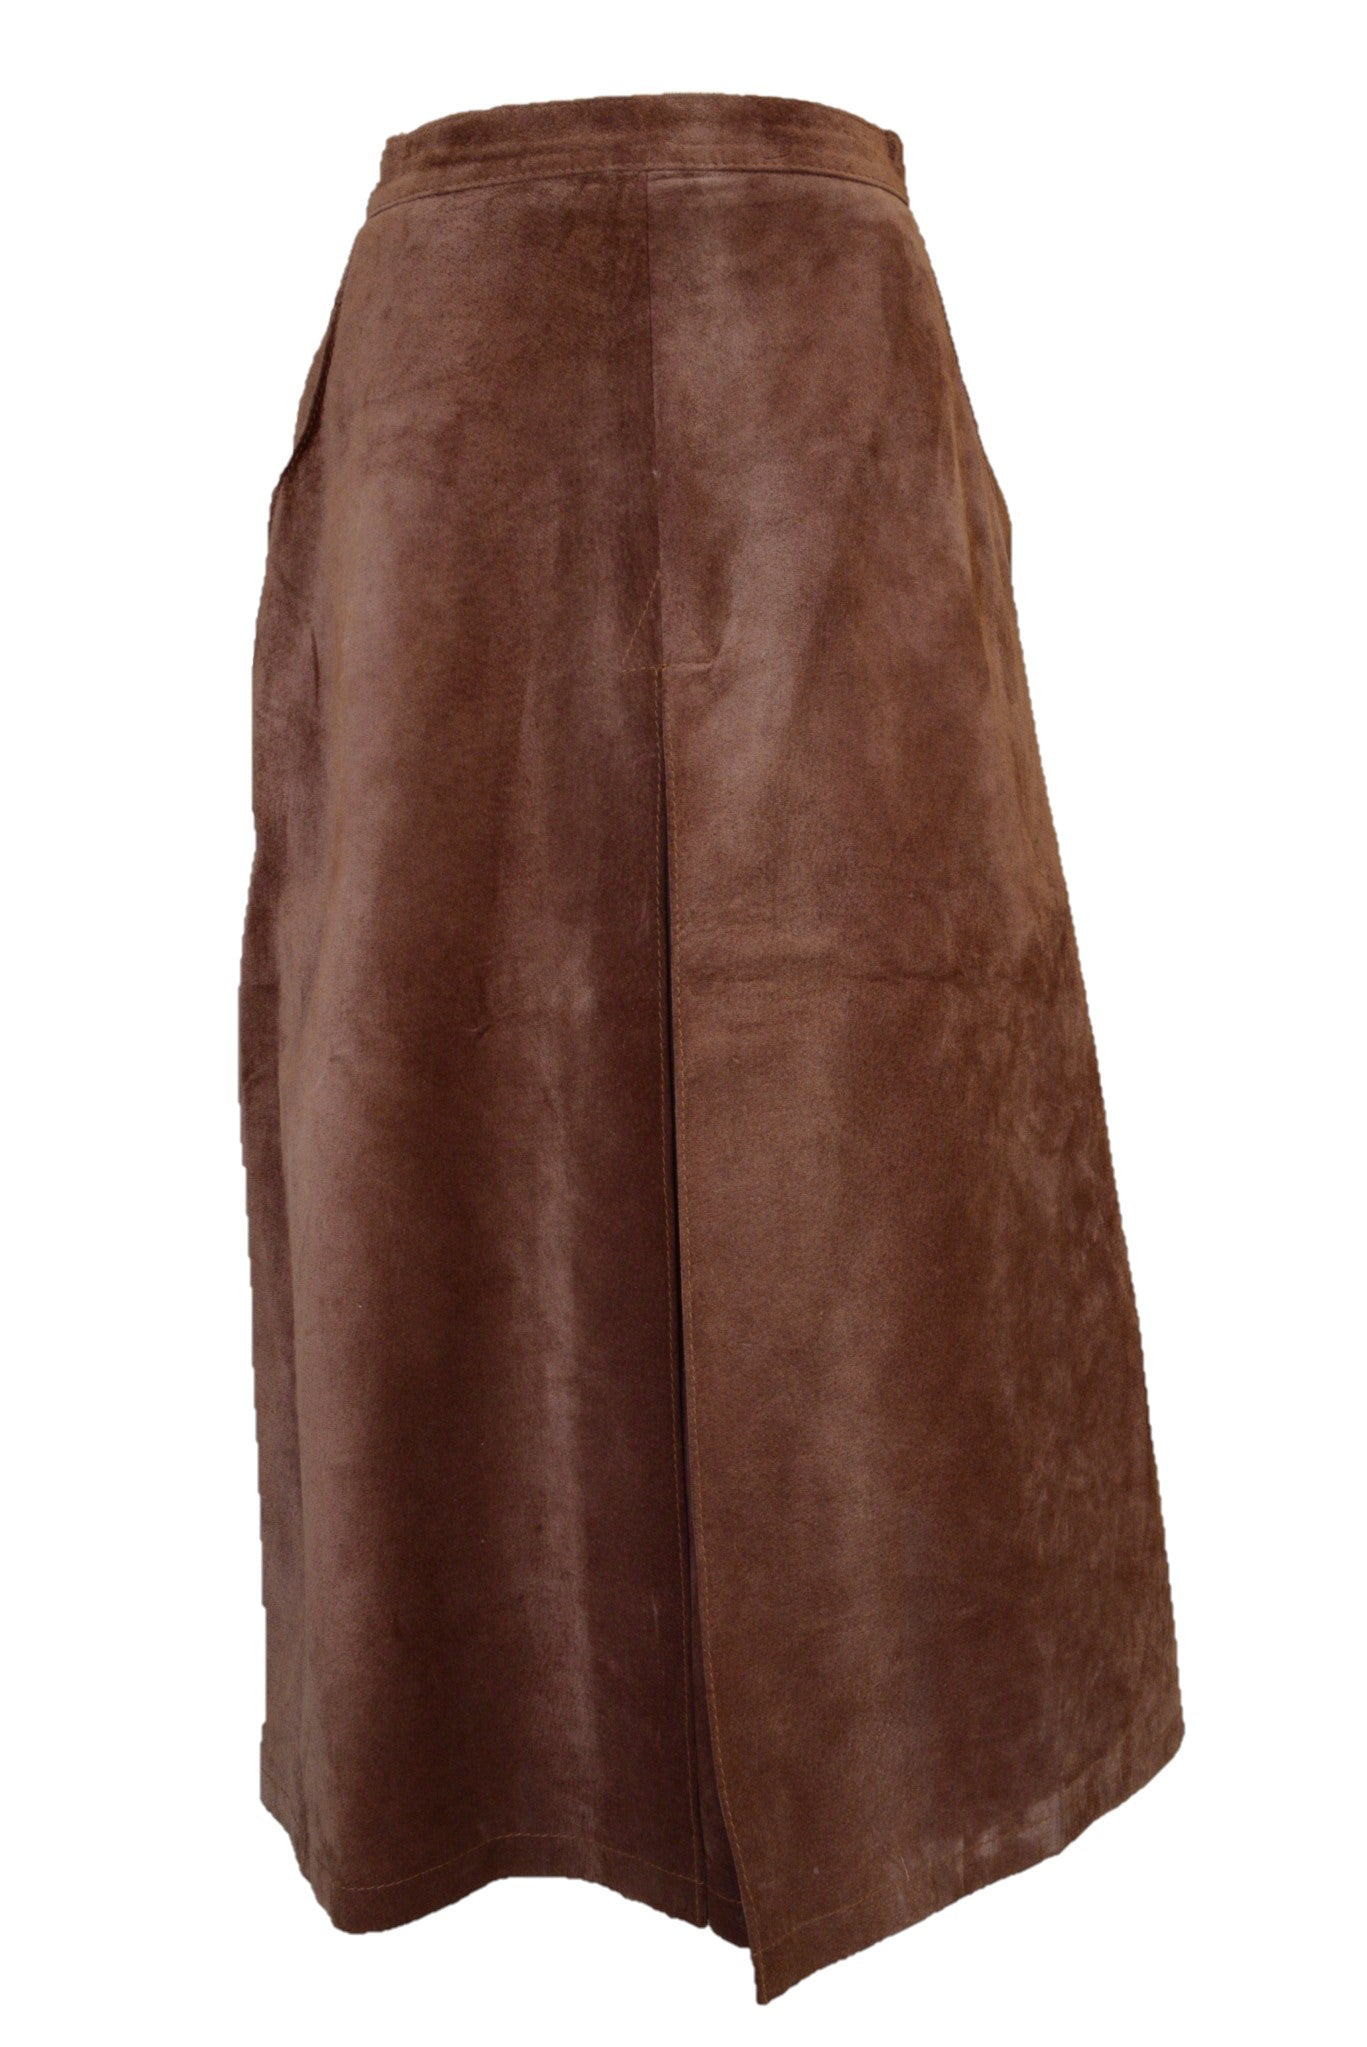 Brown suede skirt, front view